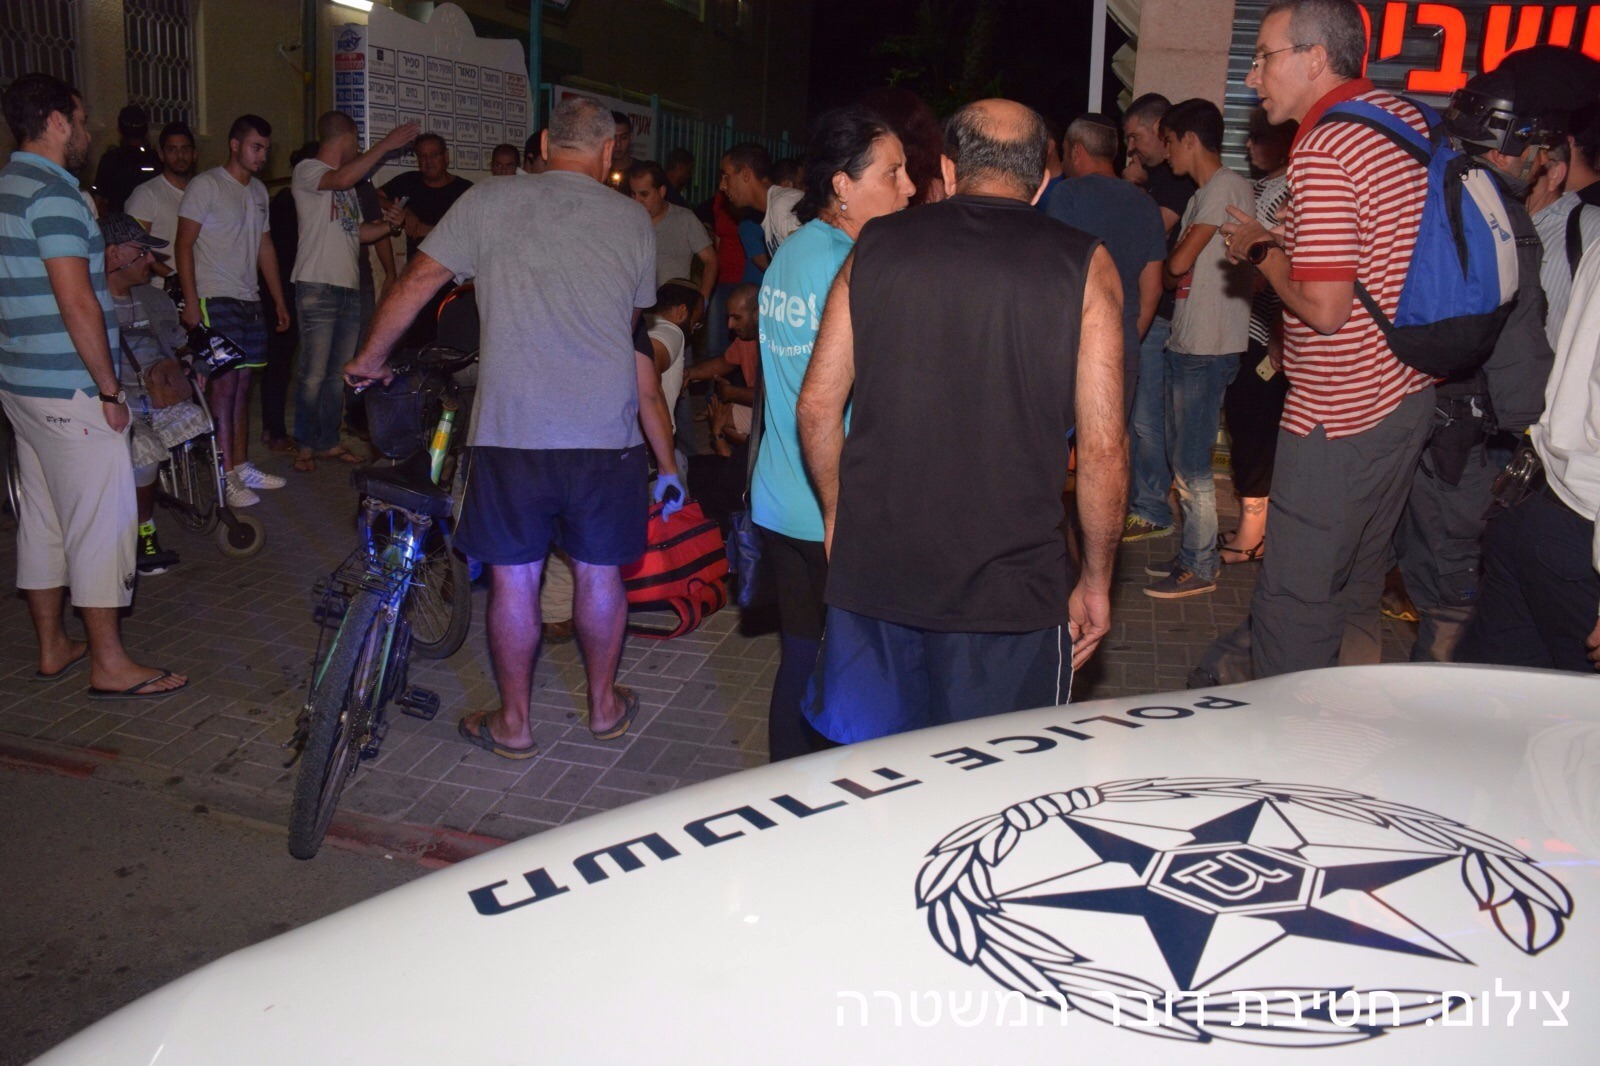 ISRAEL -- (Scroll down for video) -- Another stabbing is now being reported, this one in Afula.